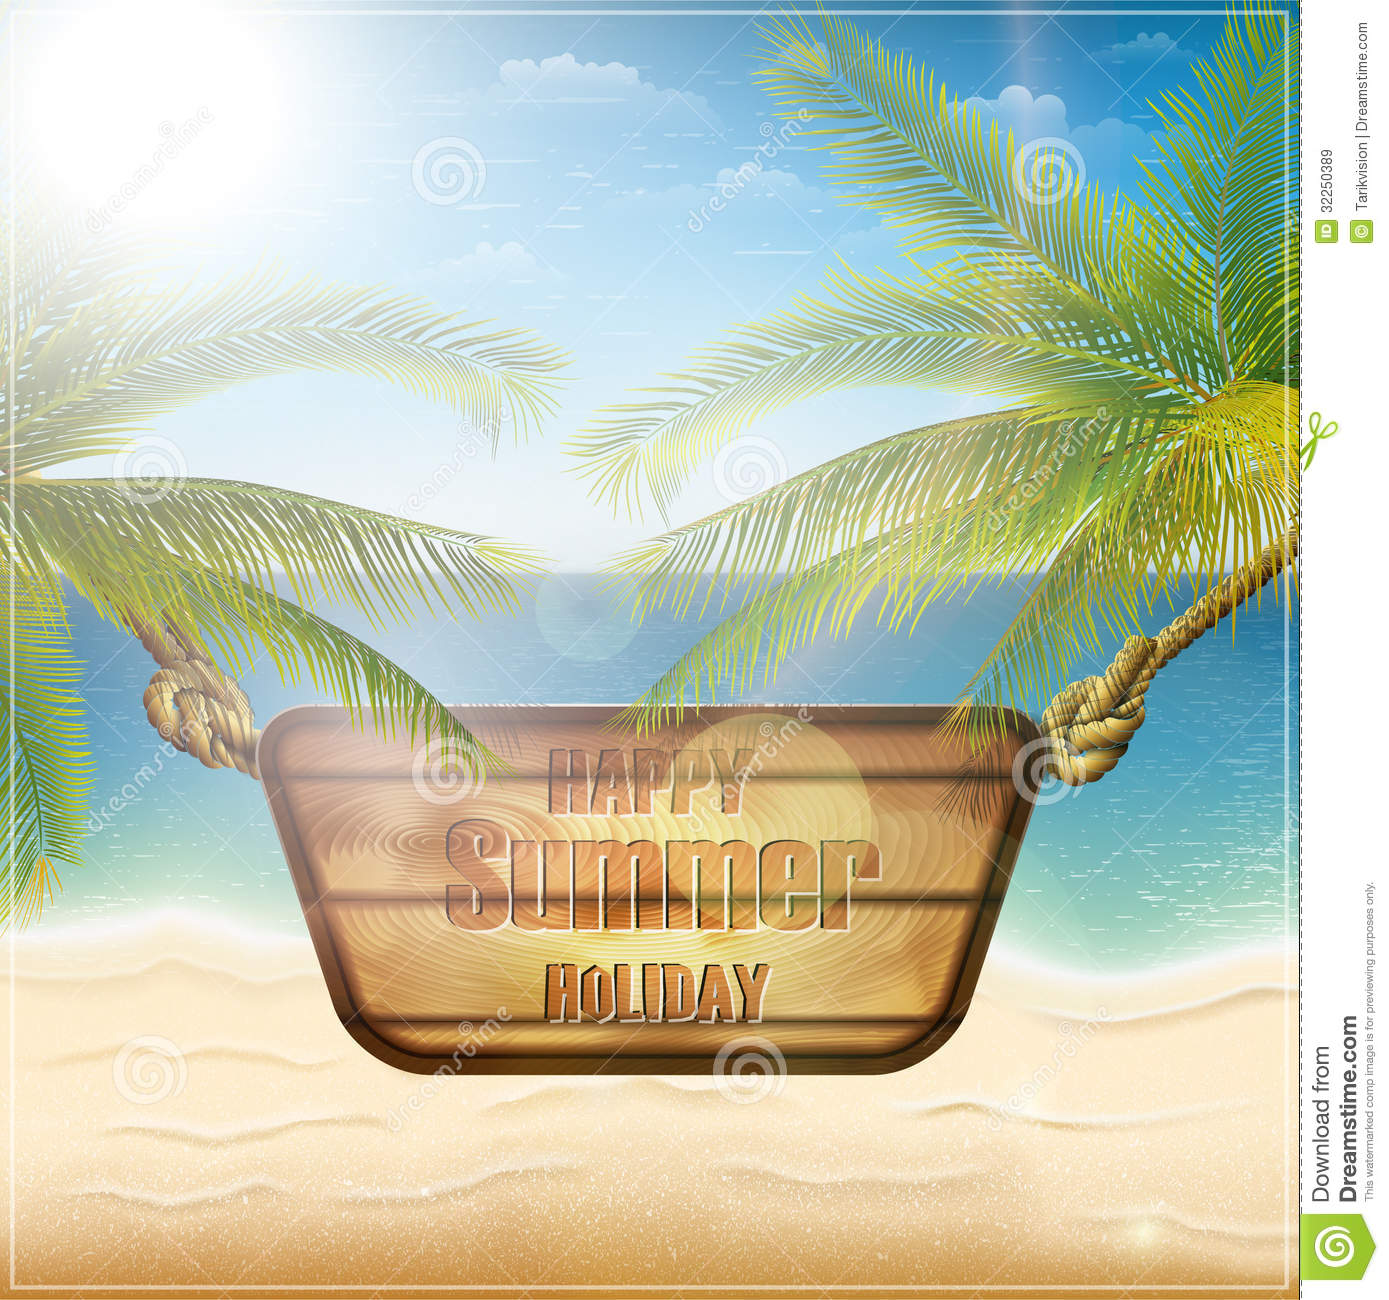 Happy Summer Holiday Card Royalty Free Stock Images   Image: 32250389